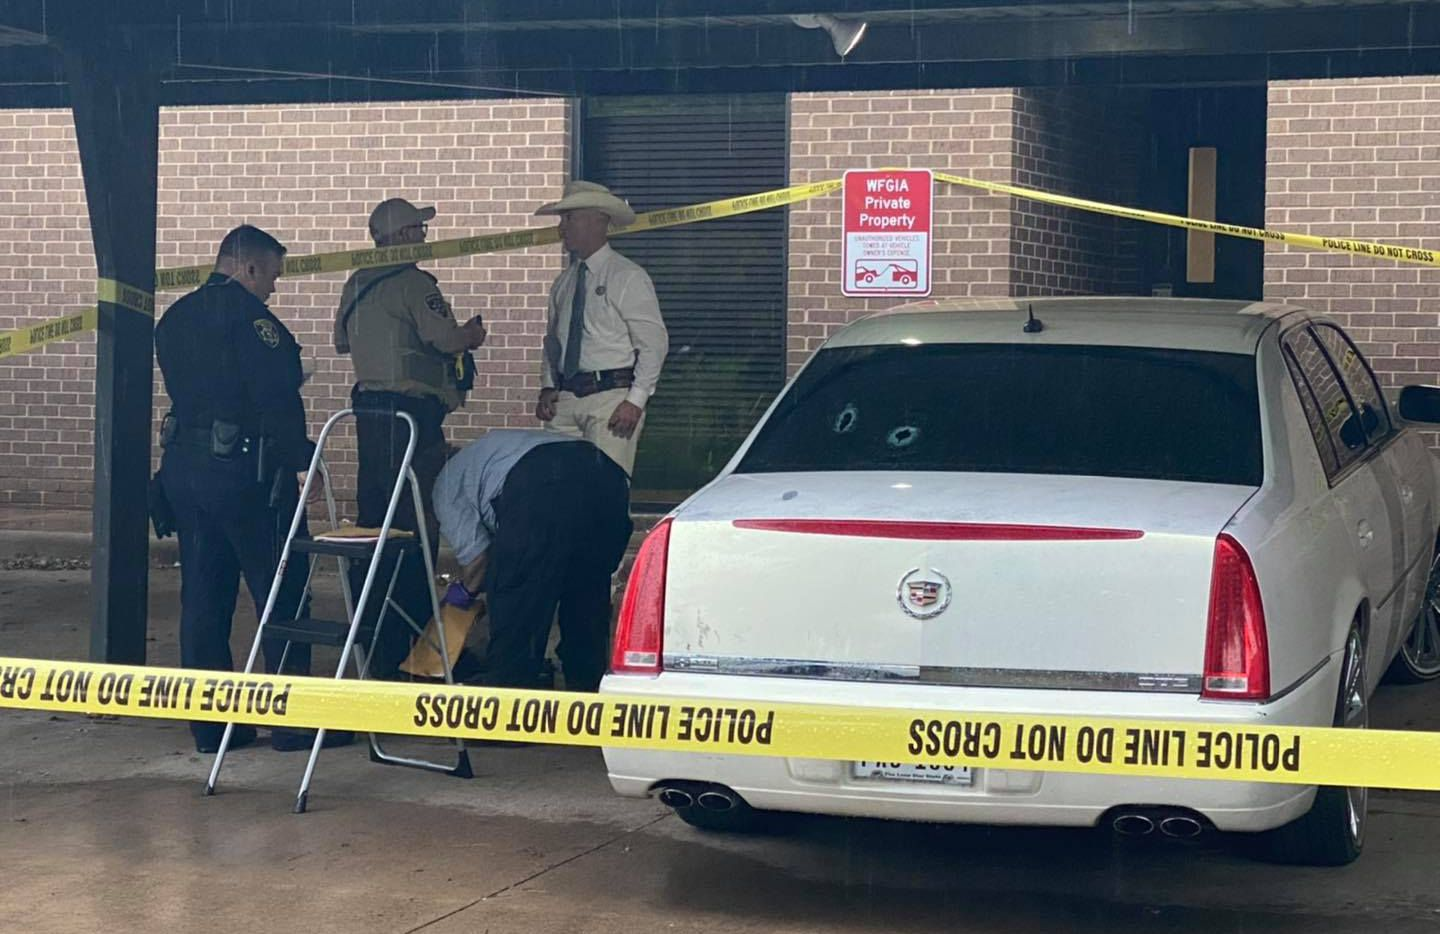 Authorities located the suspect vehicle in Wichita Falls on Tuesday morning.